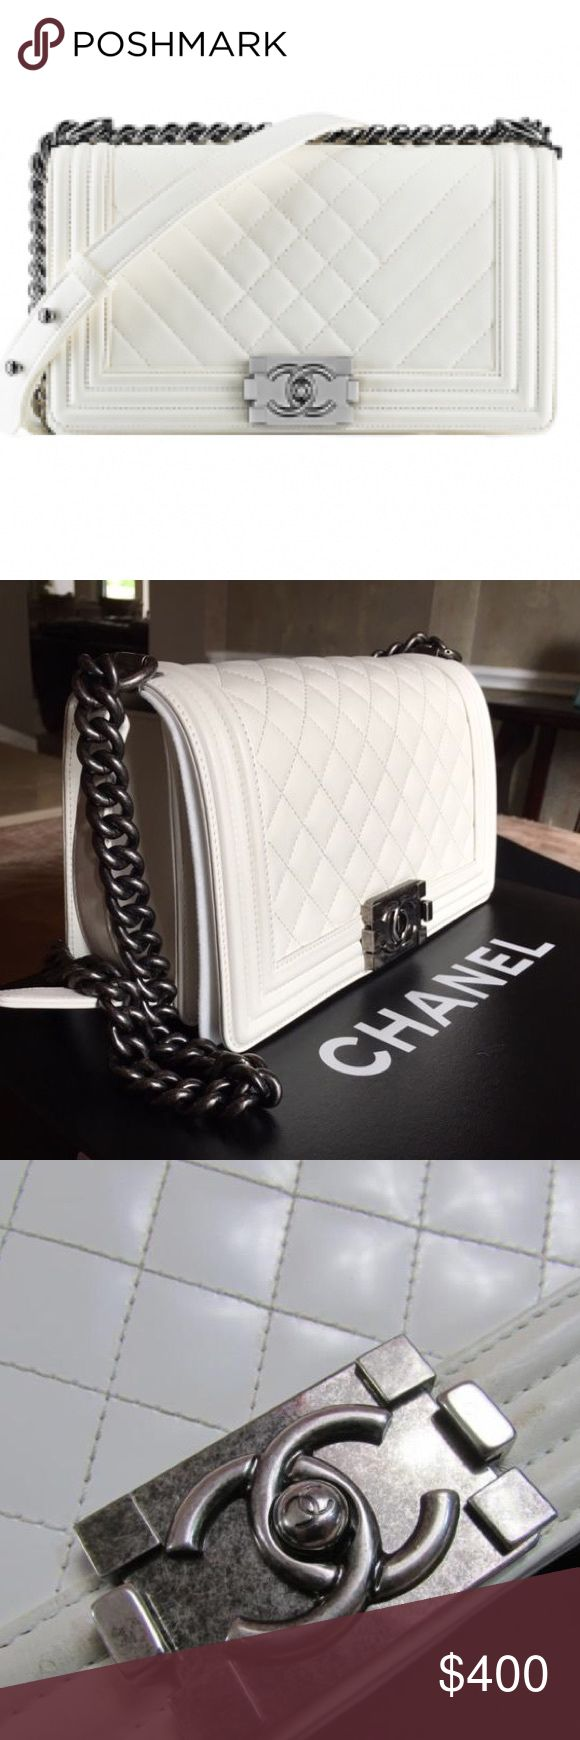 Chanel Shoulder Flap Bag Chanel White Lambskin Shoulder Bag. **PRICE REFLECTS AUTHENTICITY** (PLEASE DONT ASK THE OBVIOUS) Will Ship The Same Day! Willing To Accept Offers Through Offer Button Only. Thanks HAPPY SHOPPING 😊 CHANEL Bags Shoulder Bags